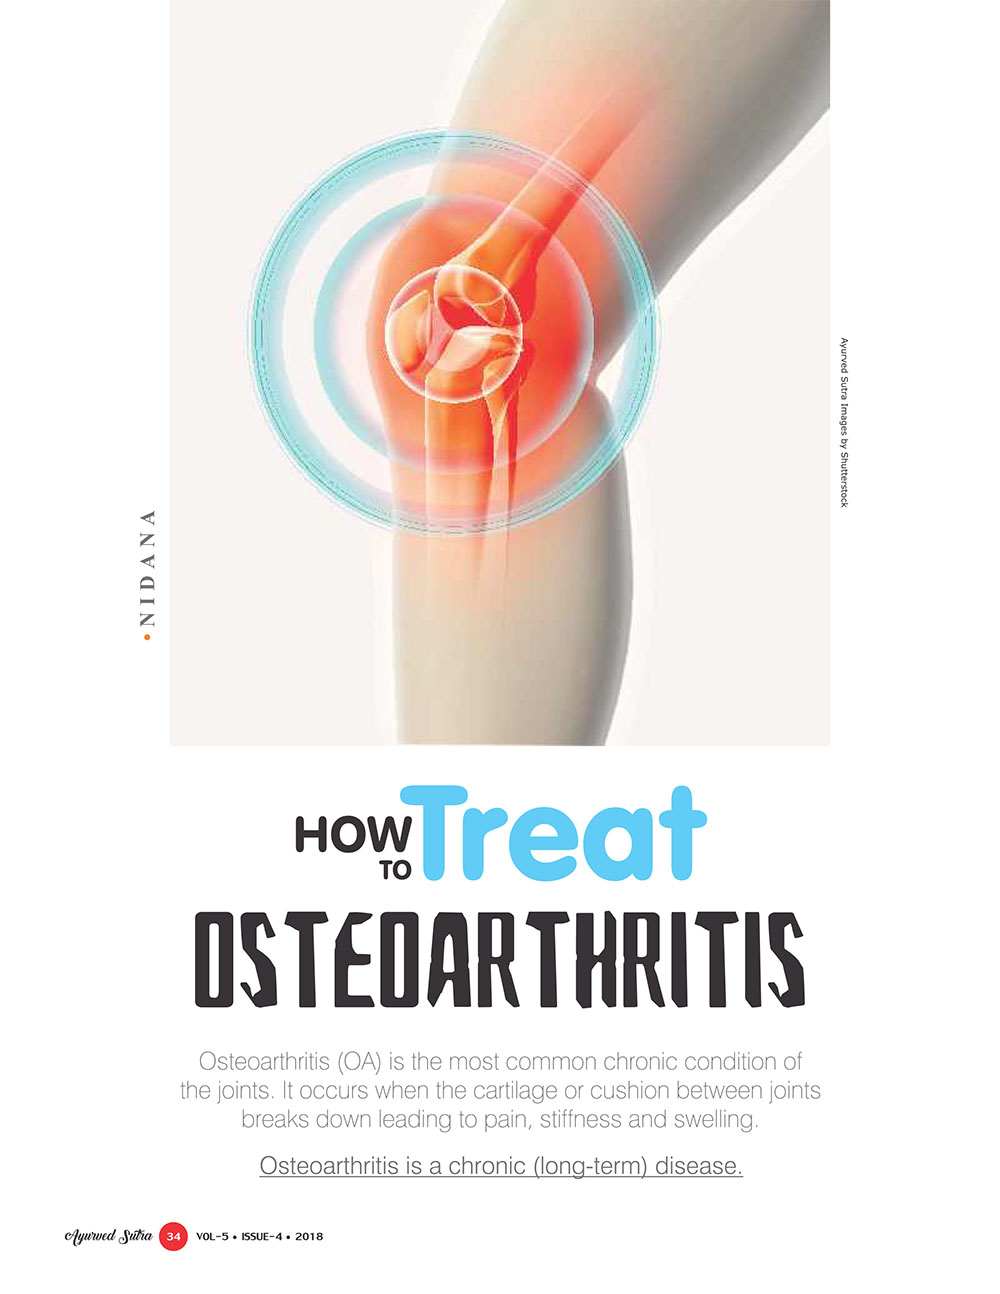 Ayurvedsutra Vol 05 issue 04 36 - How to treat Osteoarthritis